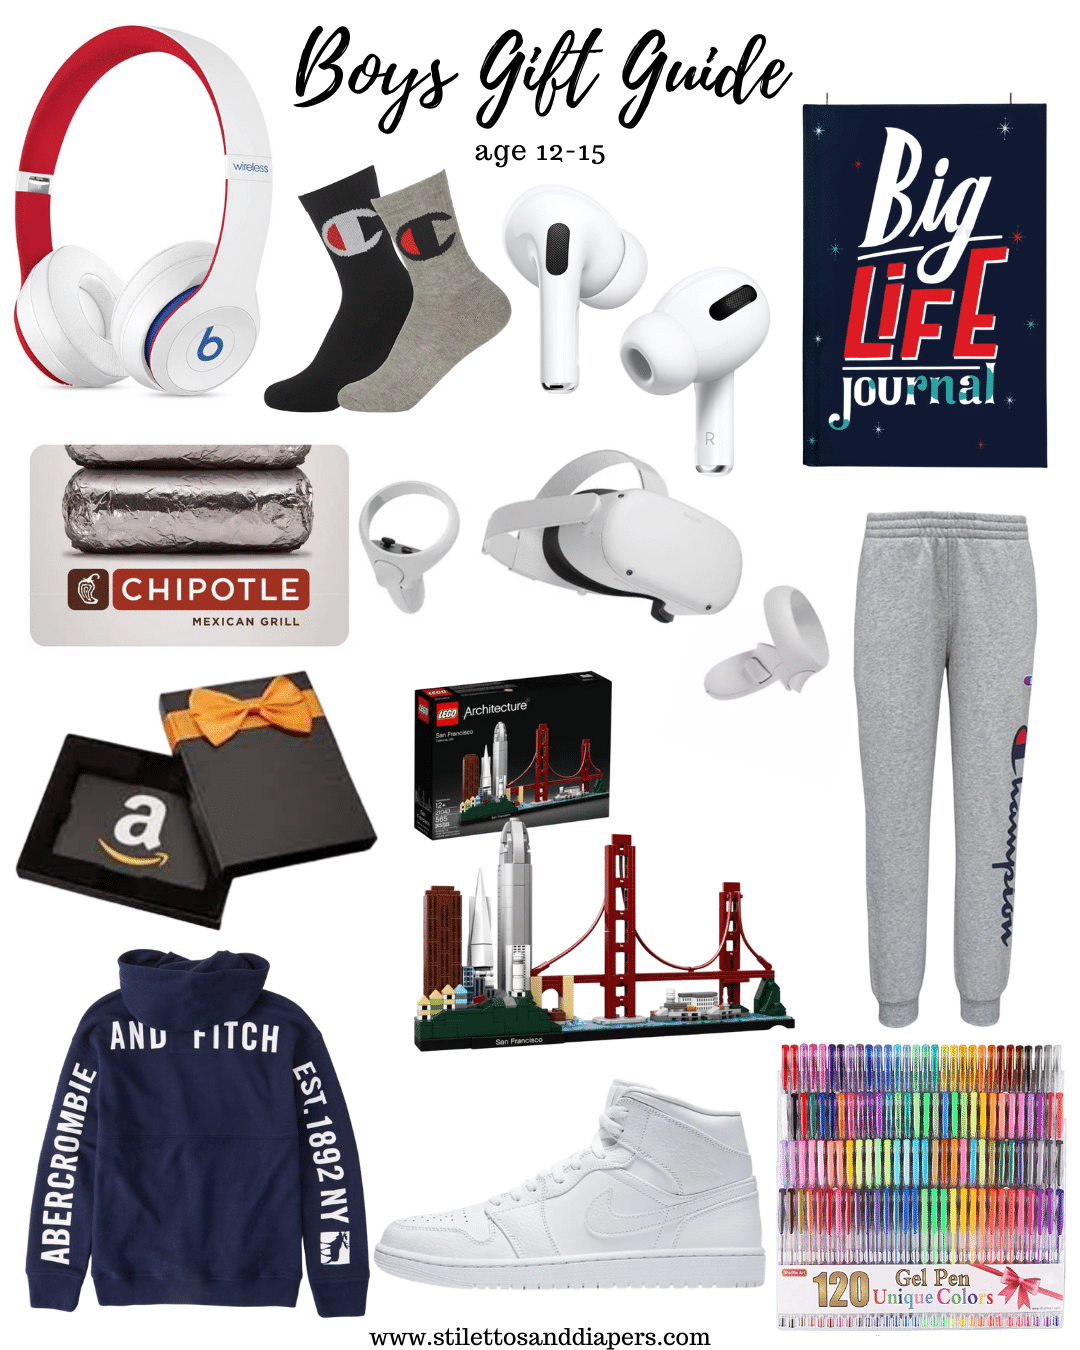 Boys Gift Guide 12-15, Boys Christmas Ideas, Stilettos and Diapers